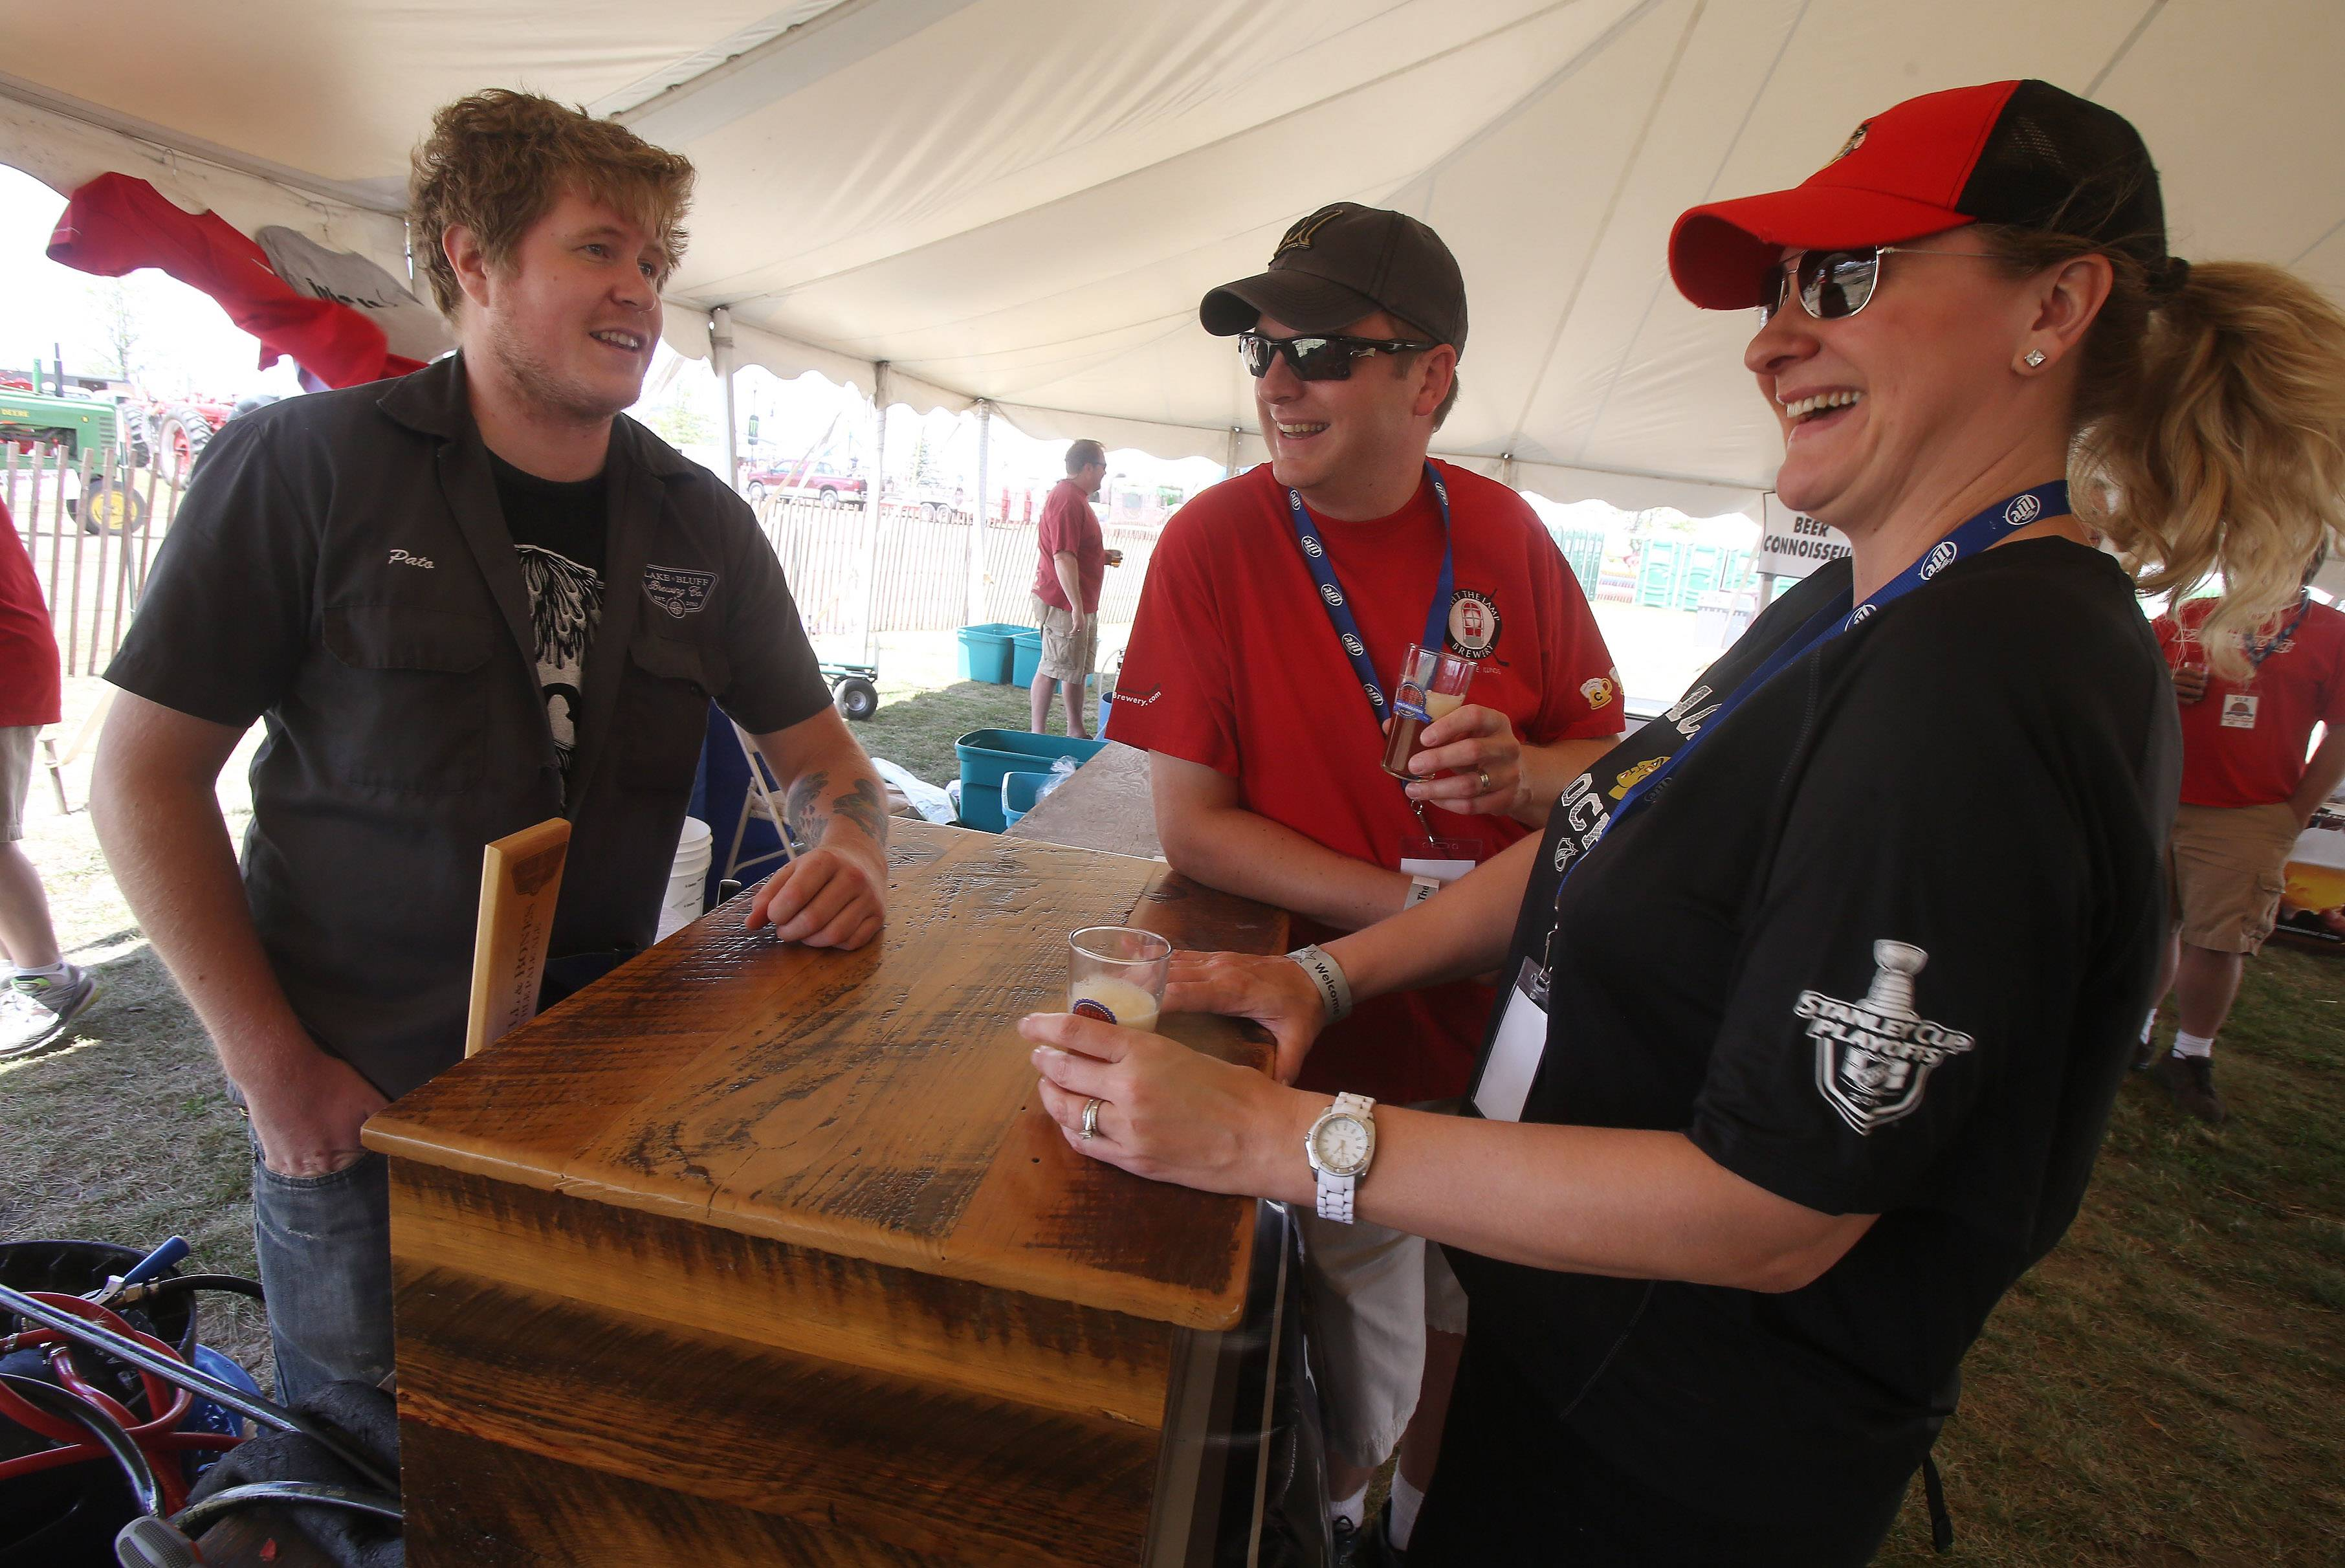 Pato Thornycroft of Lake Bluff Brewery Co., talks with Victor and Pam Dobrogowski of Mundelein during the Craft Beer Festival at the Lake County Fair at the fairgrounds in Grayslake. Sunday's other fair events featured the demolition derby, wool spinning demonstration, talent shows and more.